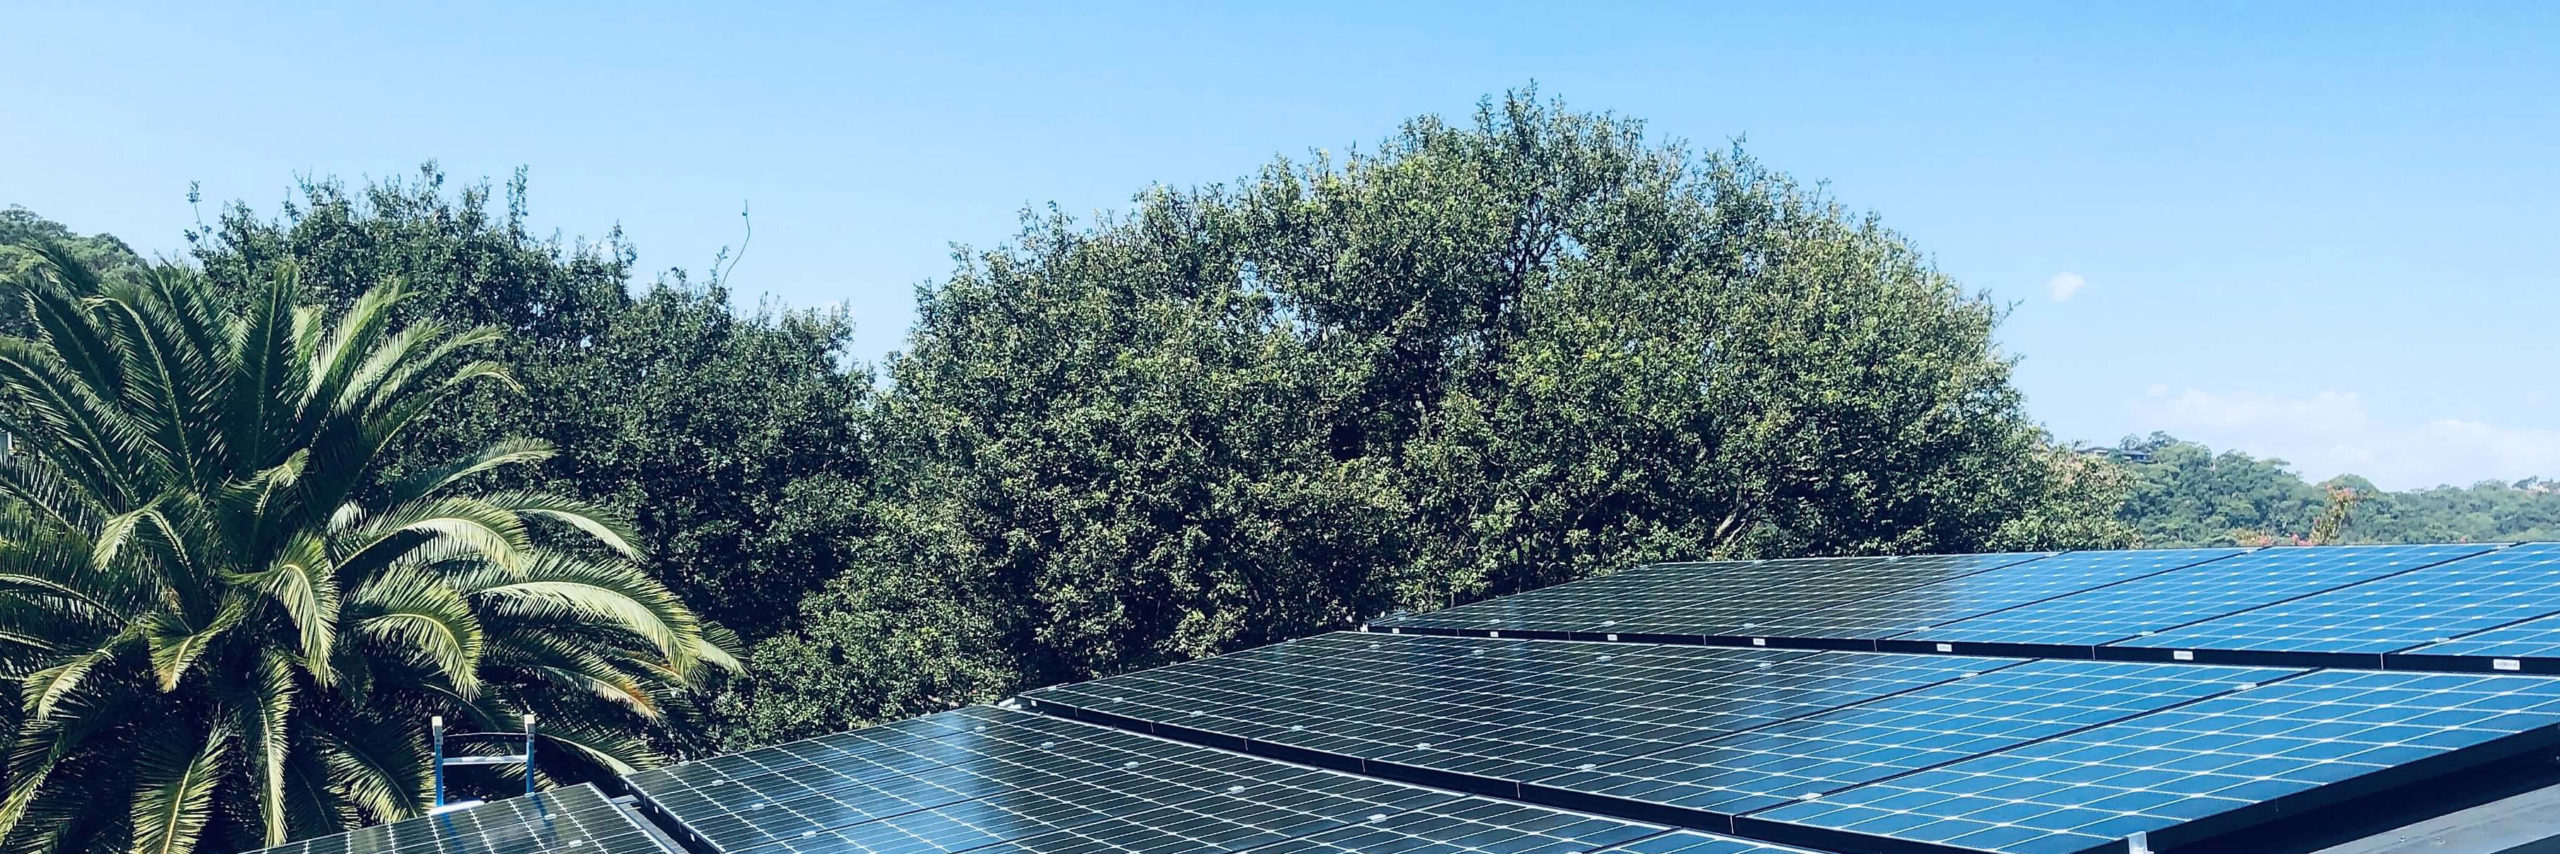 The Best Solar Panels to Install in Australia in 2021